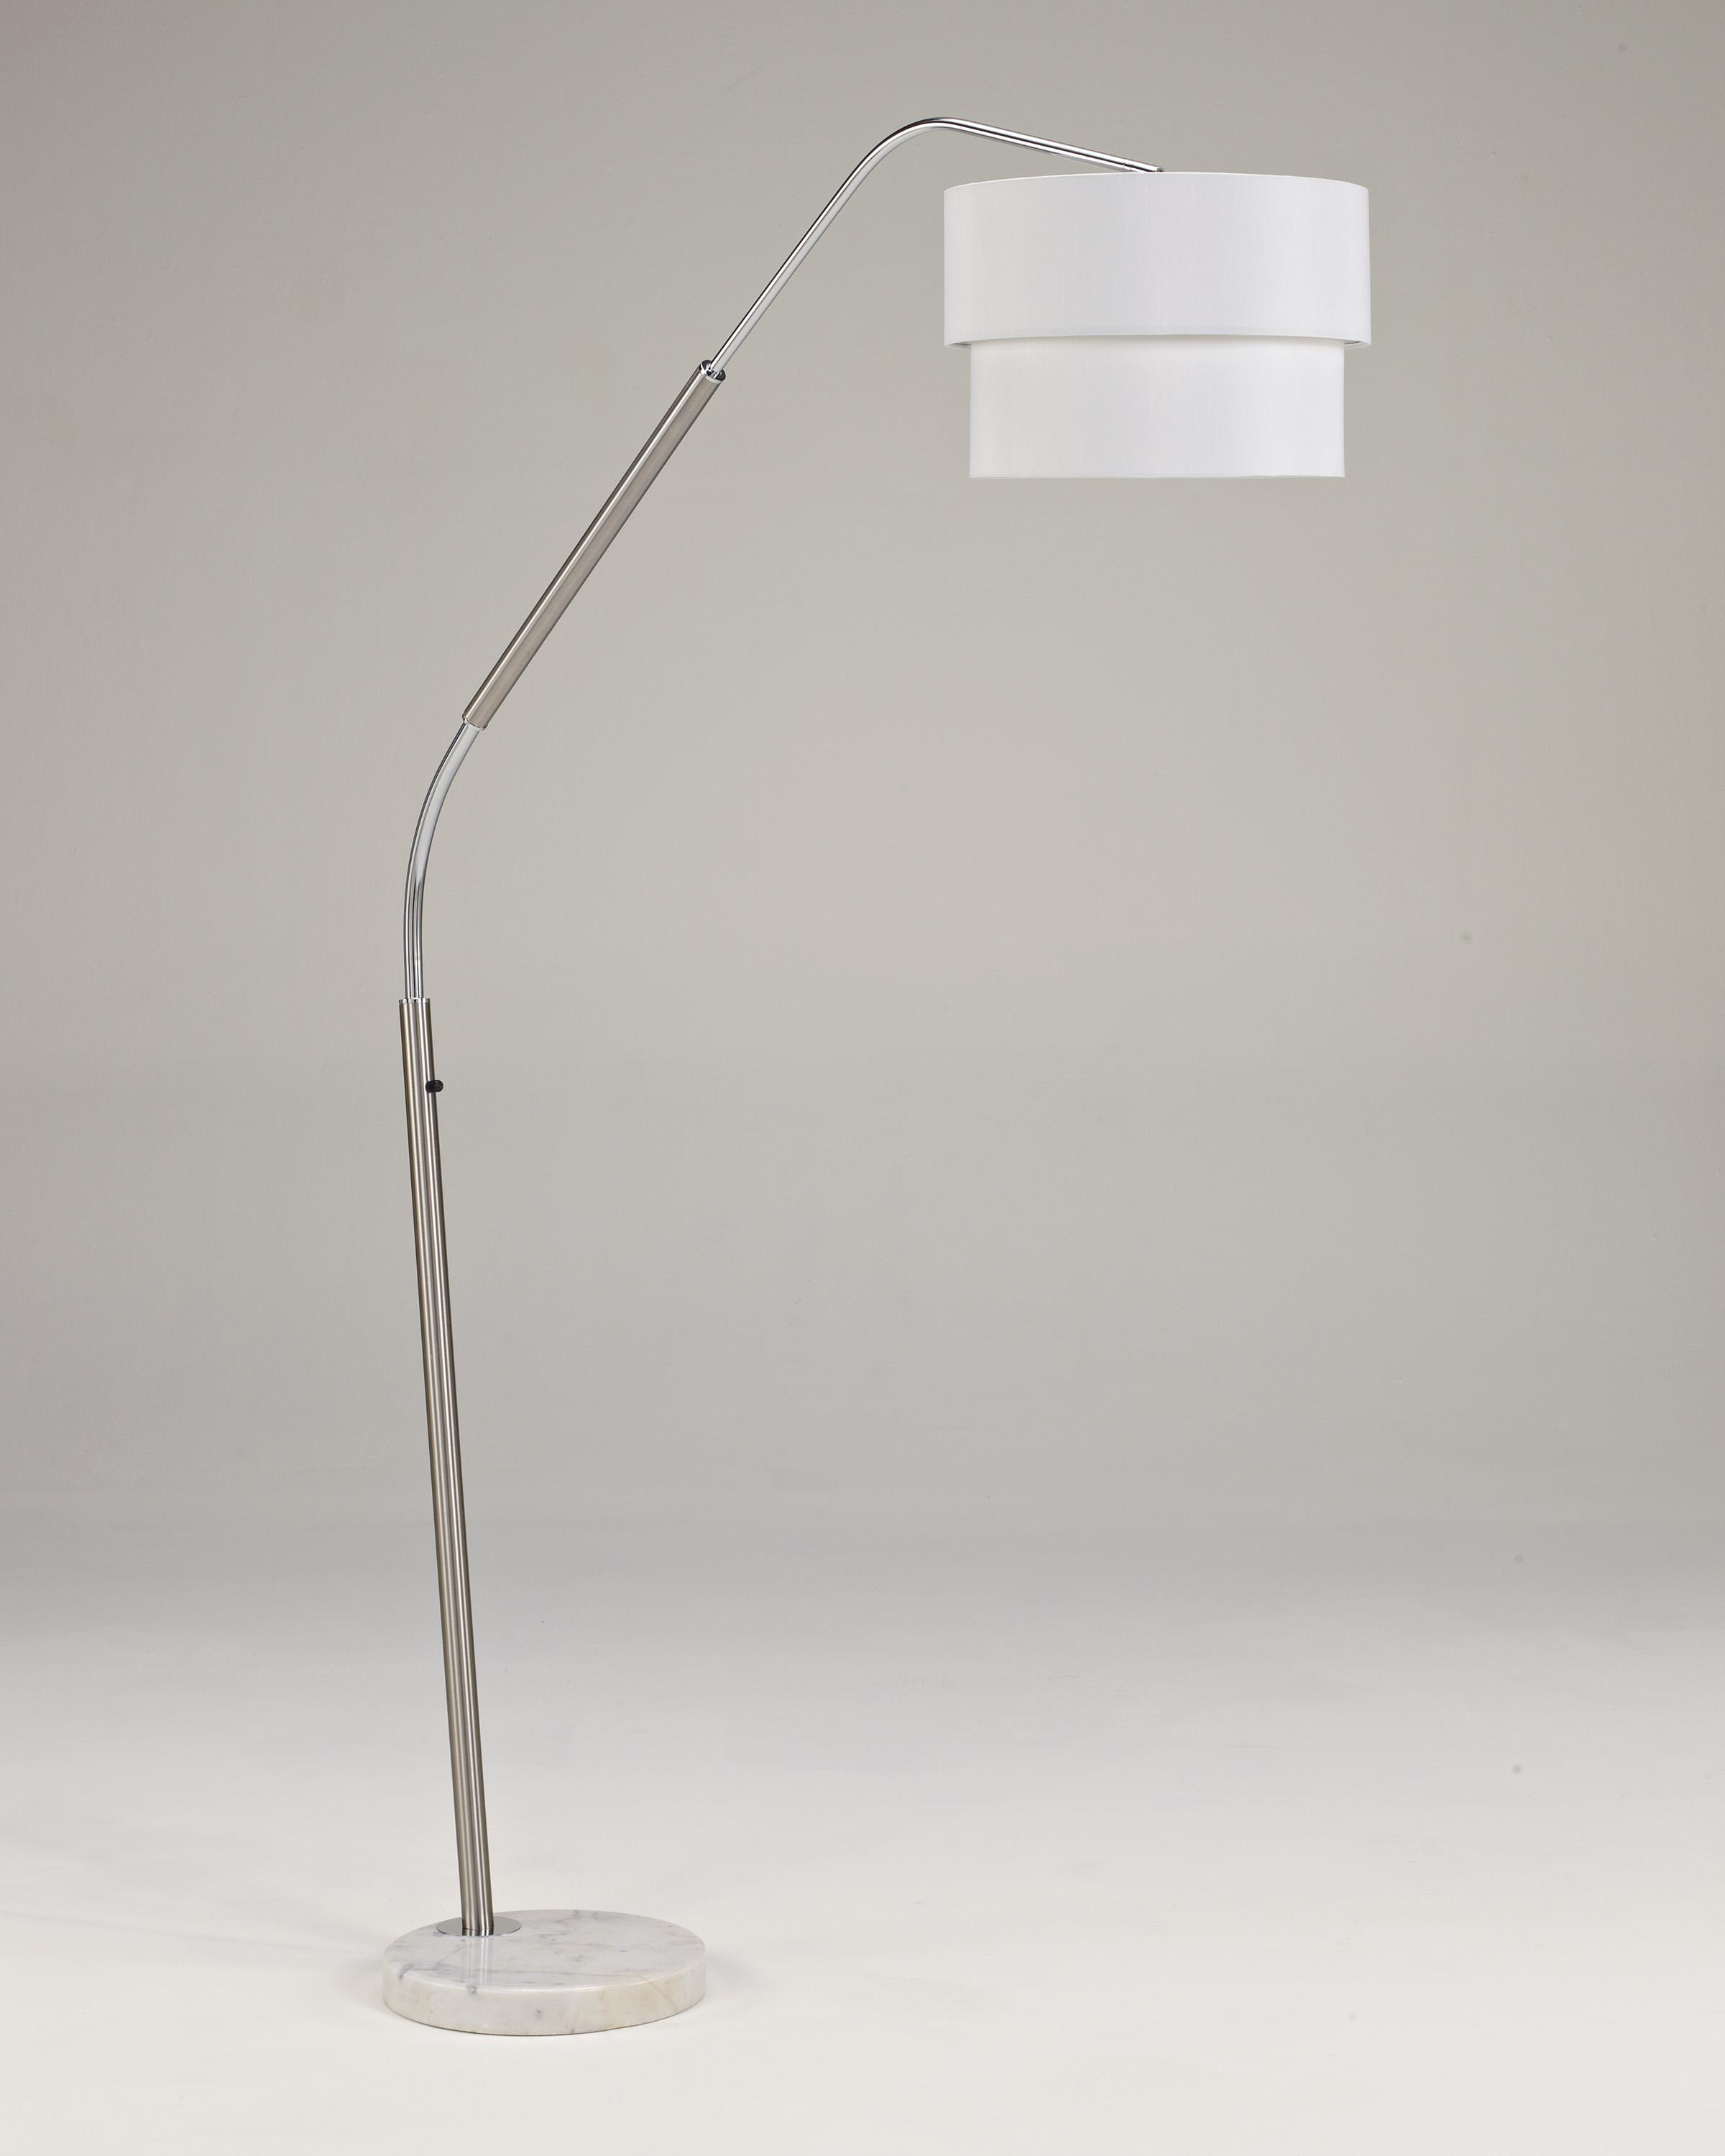 Lamps - Metro Modern Suzu Metal Arc Lamp by Signature Design at Fisher Home Furnishings